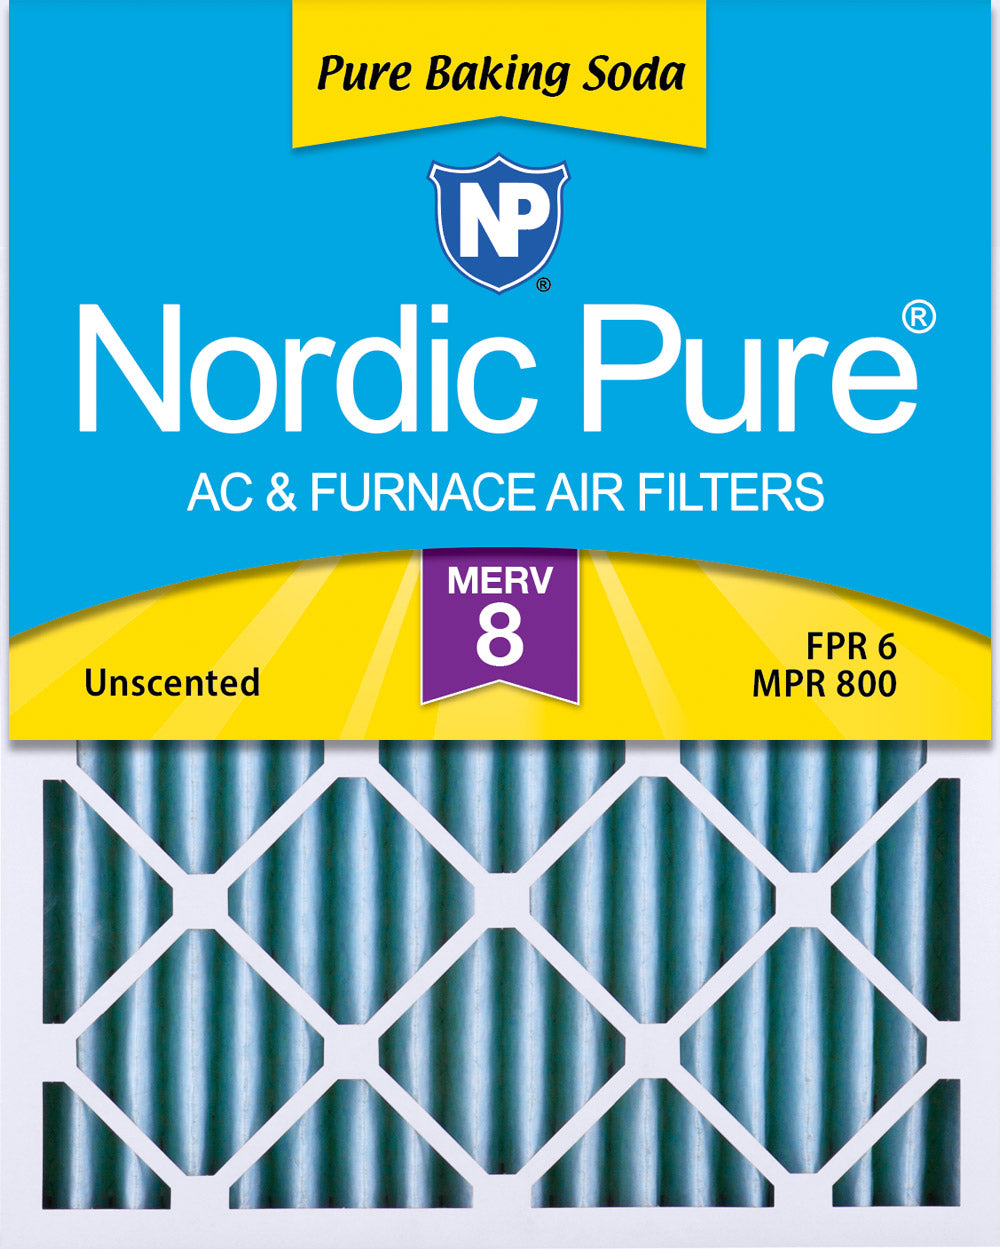 3 Pack 18 x 24 x 1 Pure Green 3 Piece 3 Pack 18 x 24 x 1 Pure Green 3 Piece Nordic Pure 18x24x1 Eco-Friendly AC Furnace Air Filters